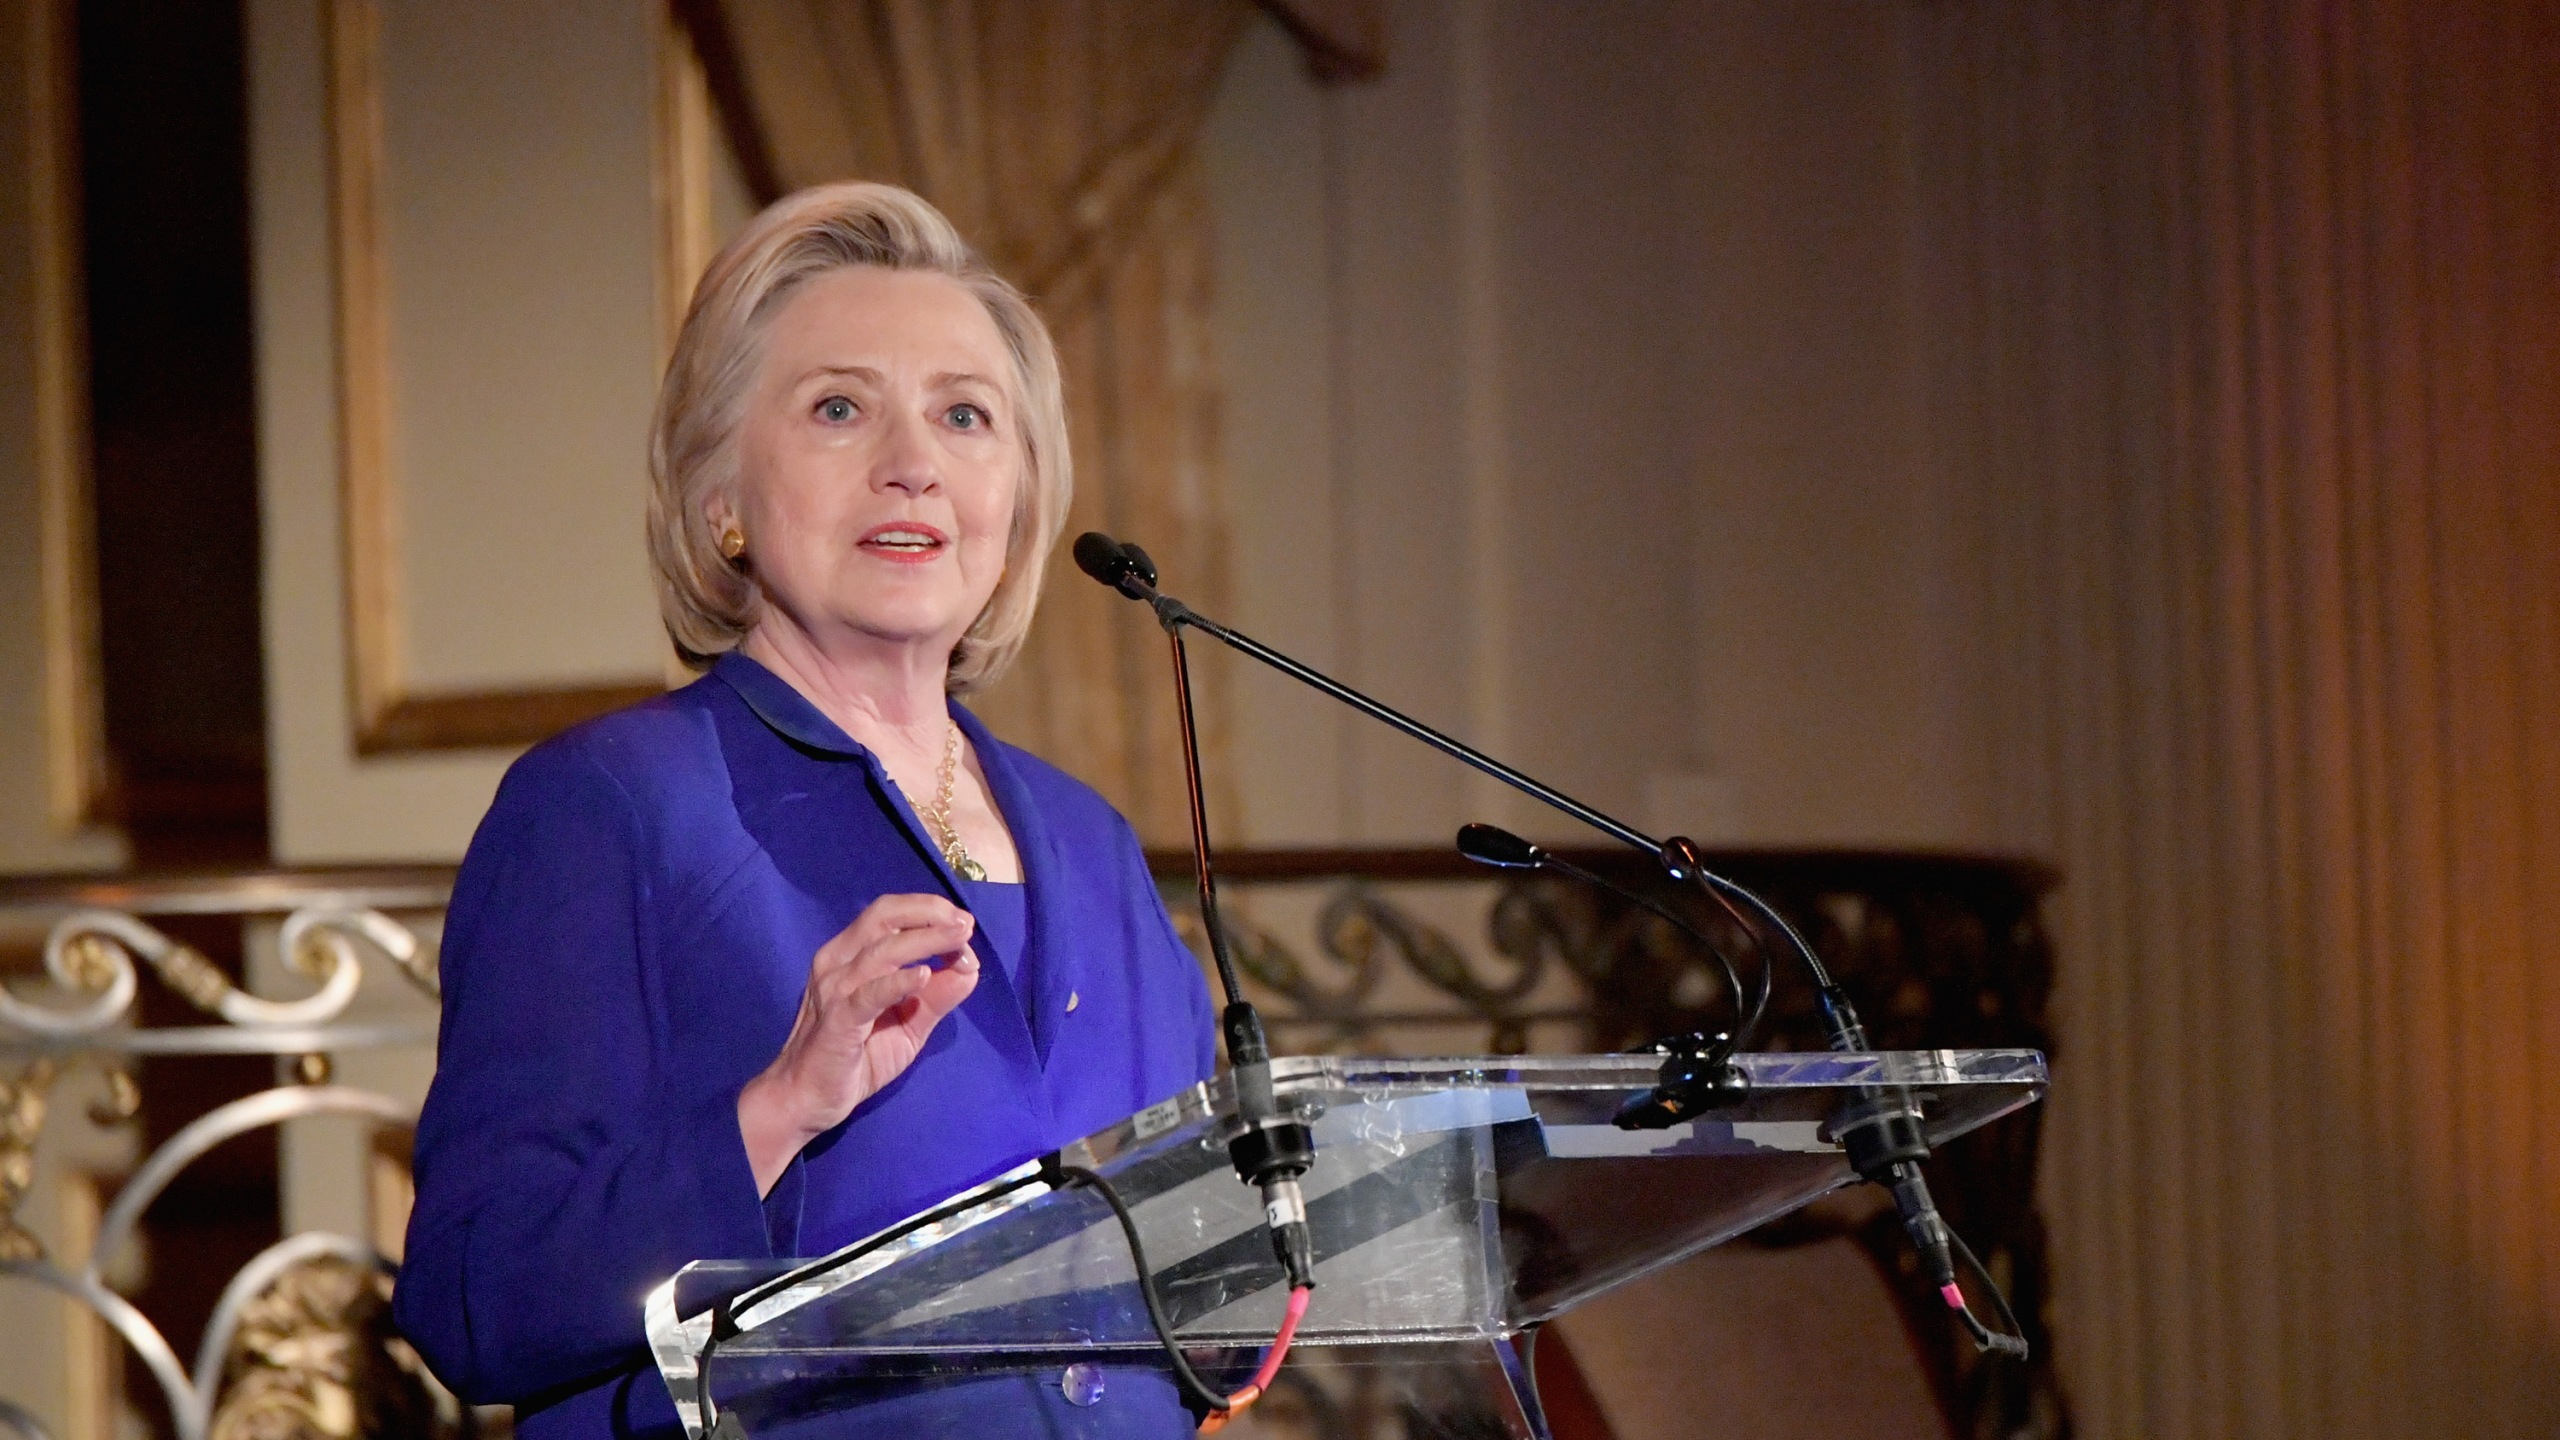 Hillary Clinton speaks during the 8th Annual Elly Awards hosted by the Women's Forum of New York at The Plaza Hotel on June 18, 2018. (Credit: Mike Coppola/Getty Images)